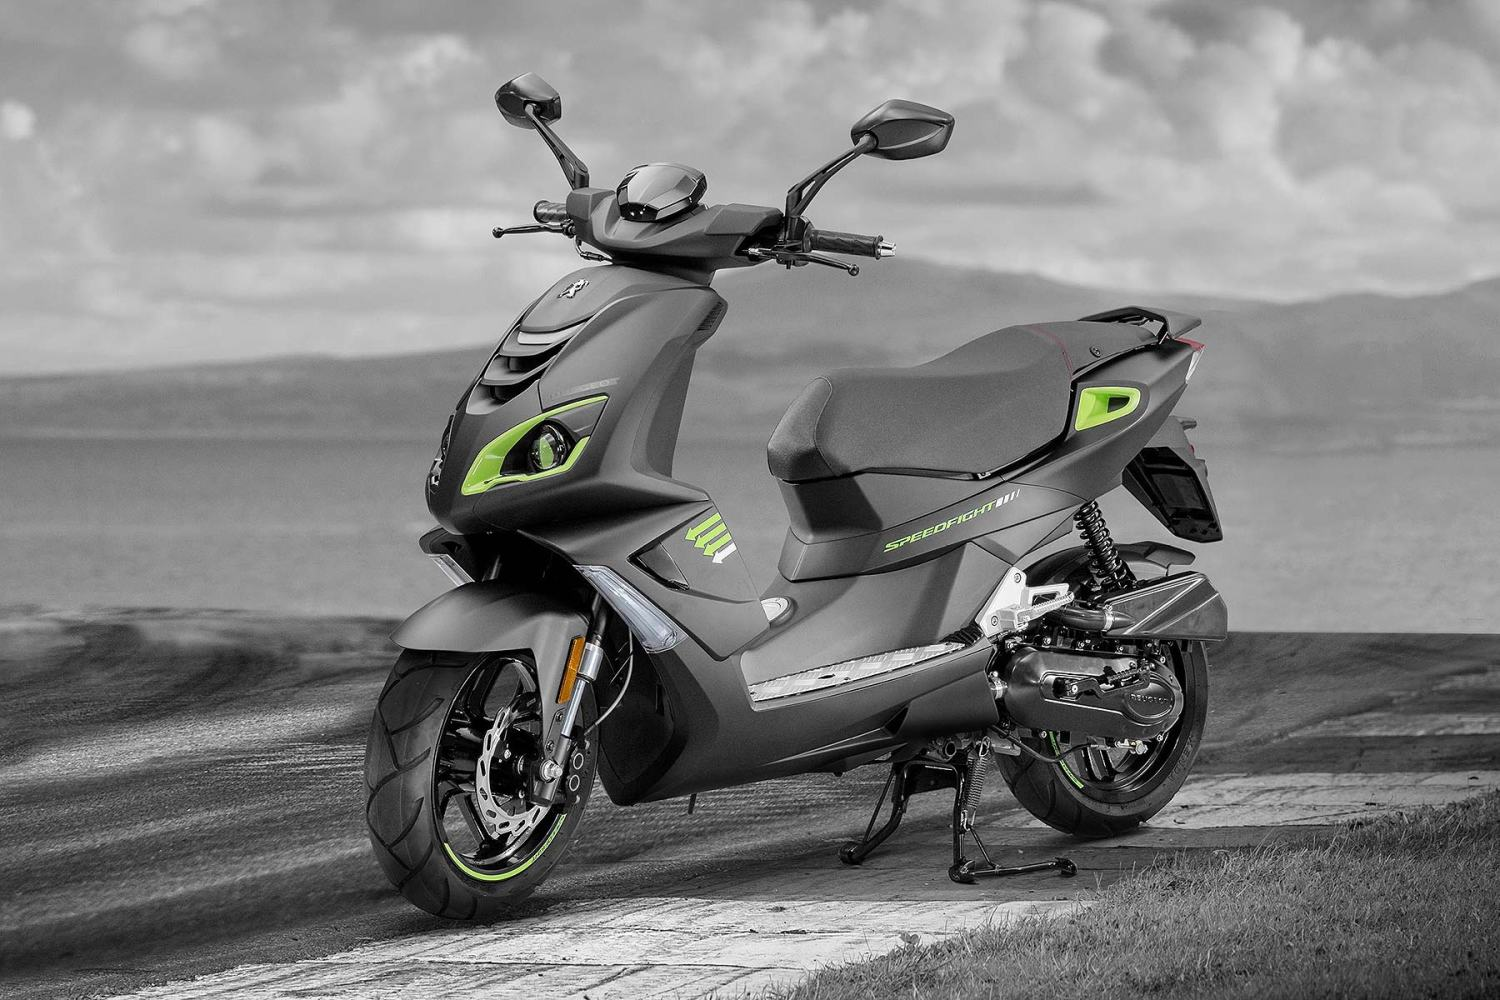 Auto Trader Best Bike Awards 2018: the UK's top motorcycles